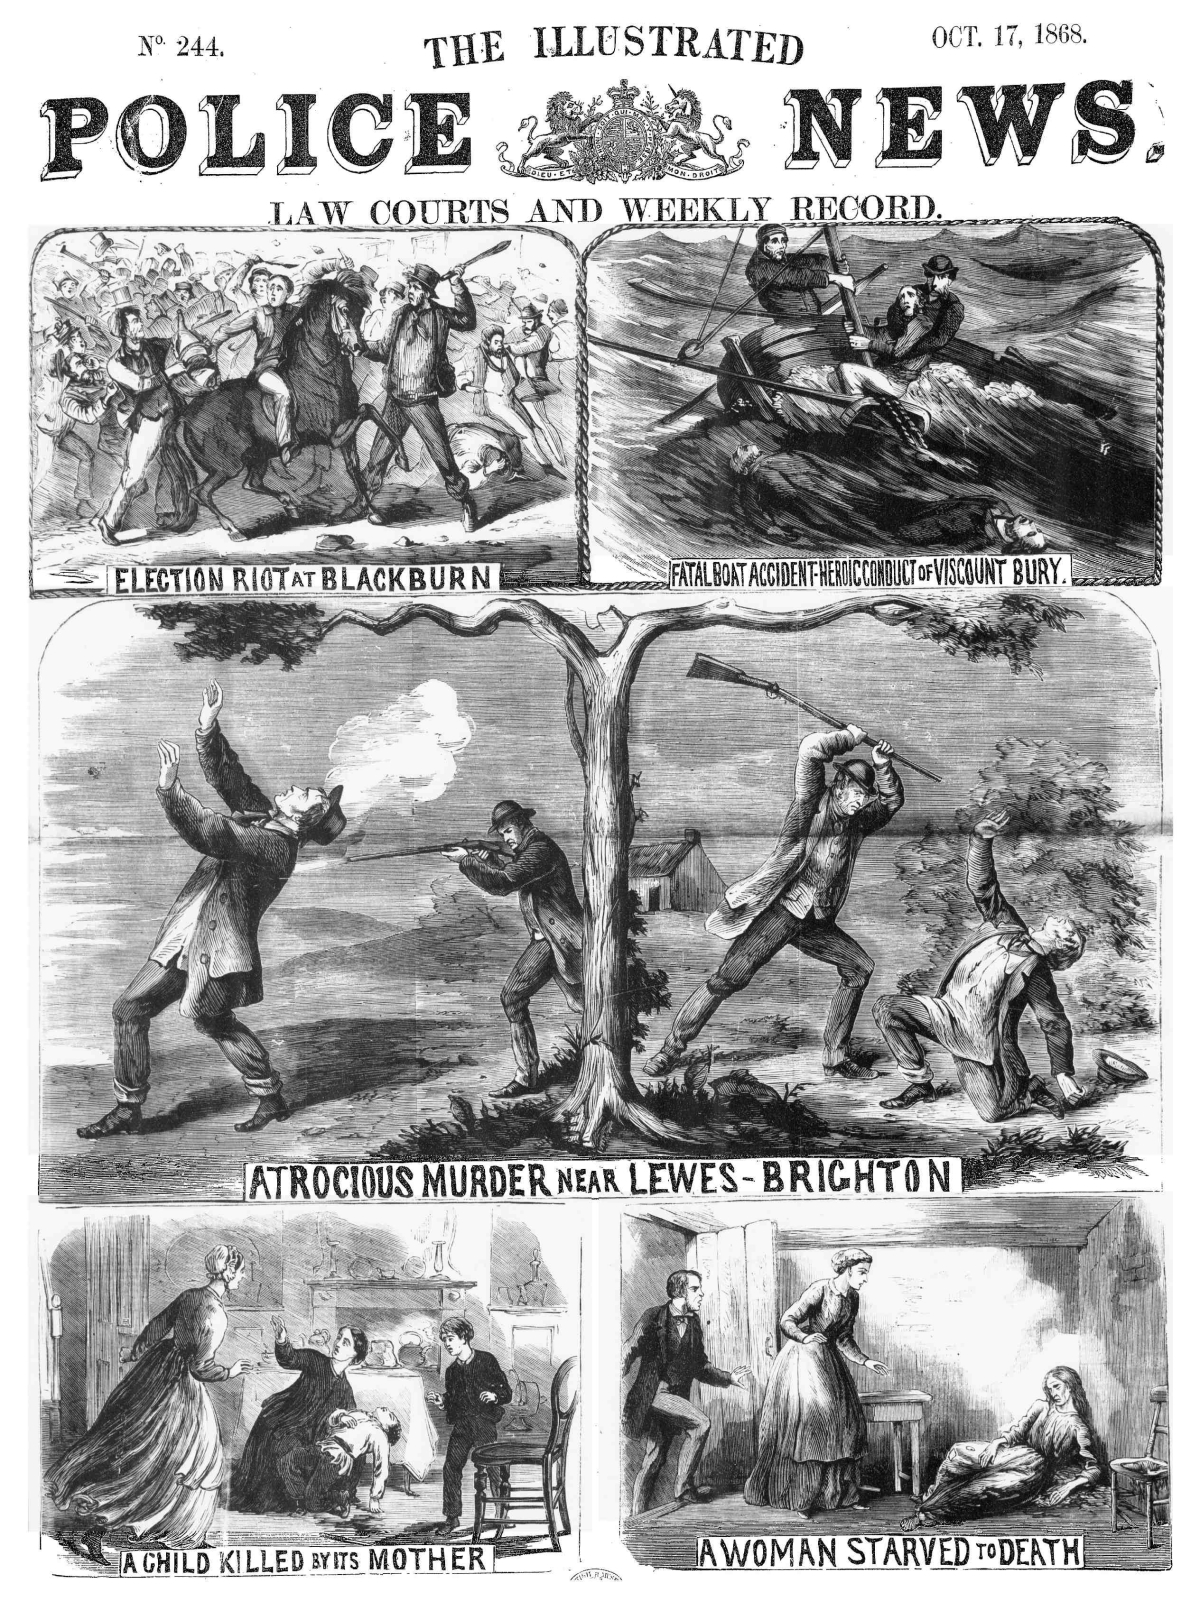 Illustrated Police News - 17th October 1868